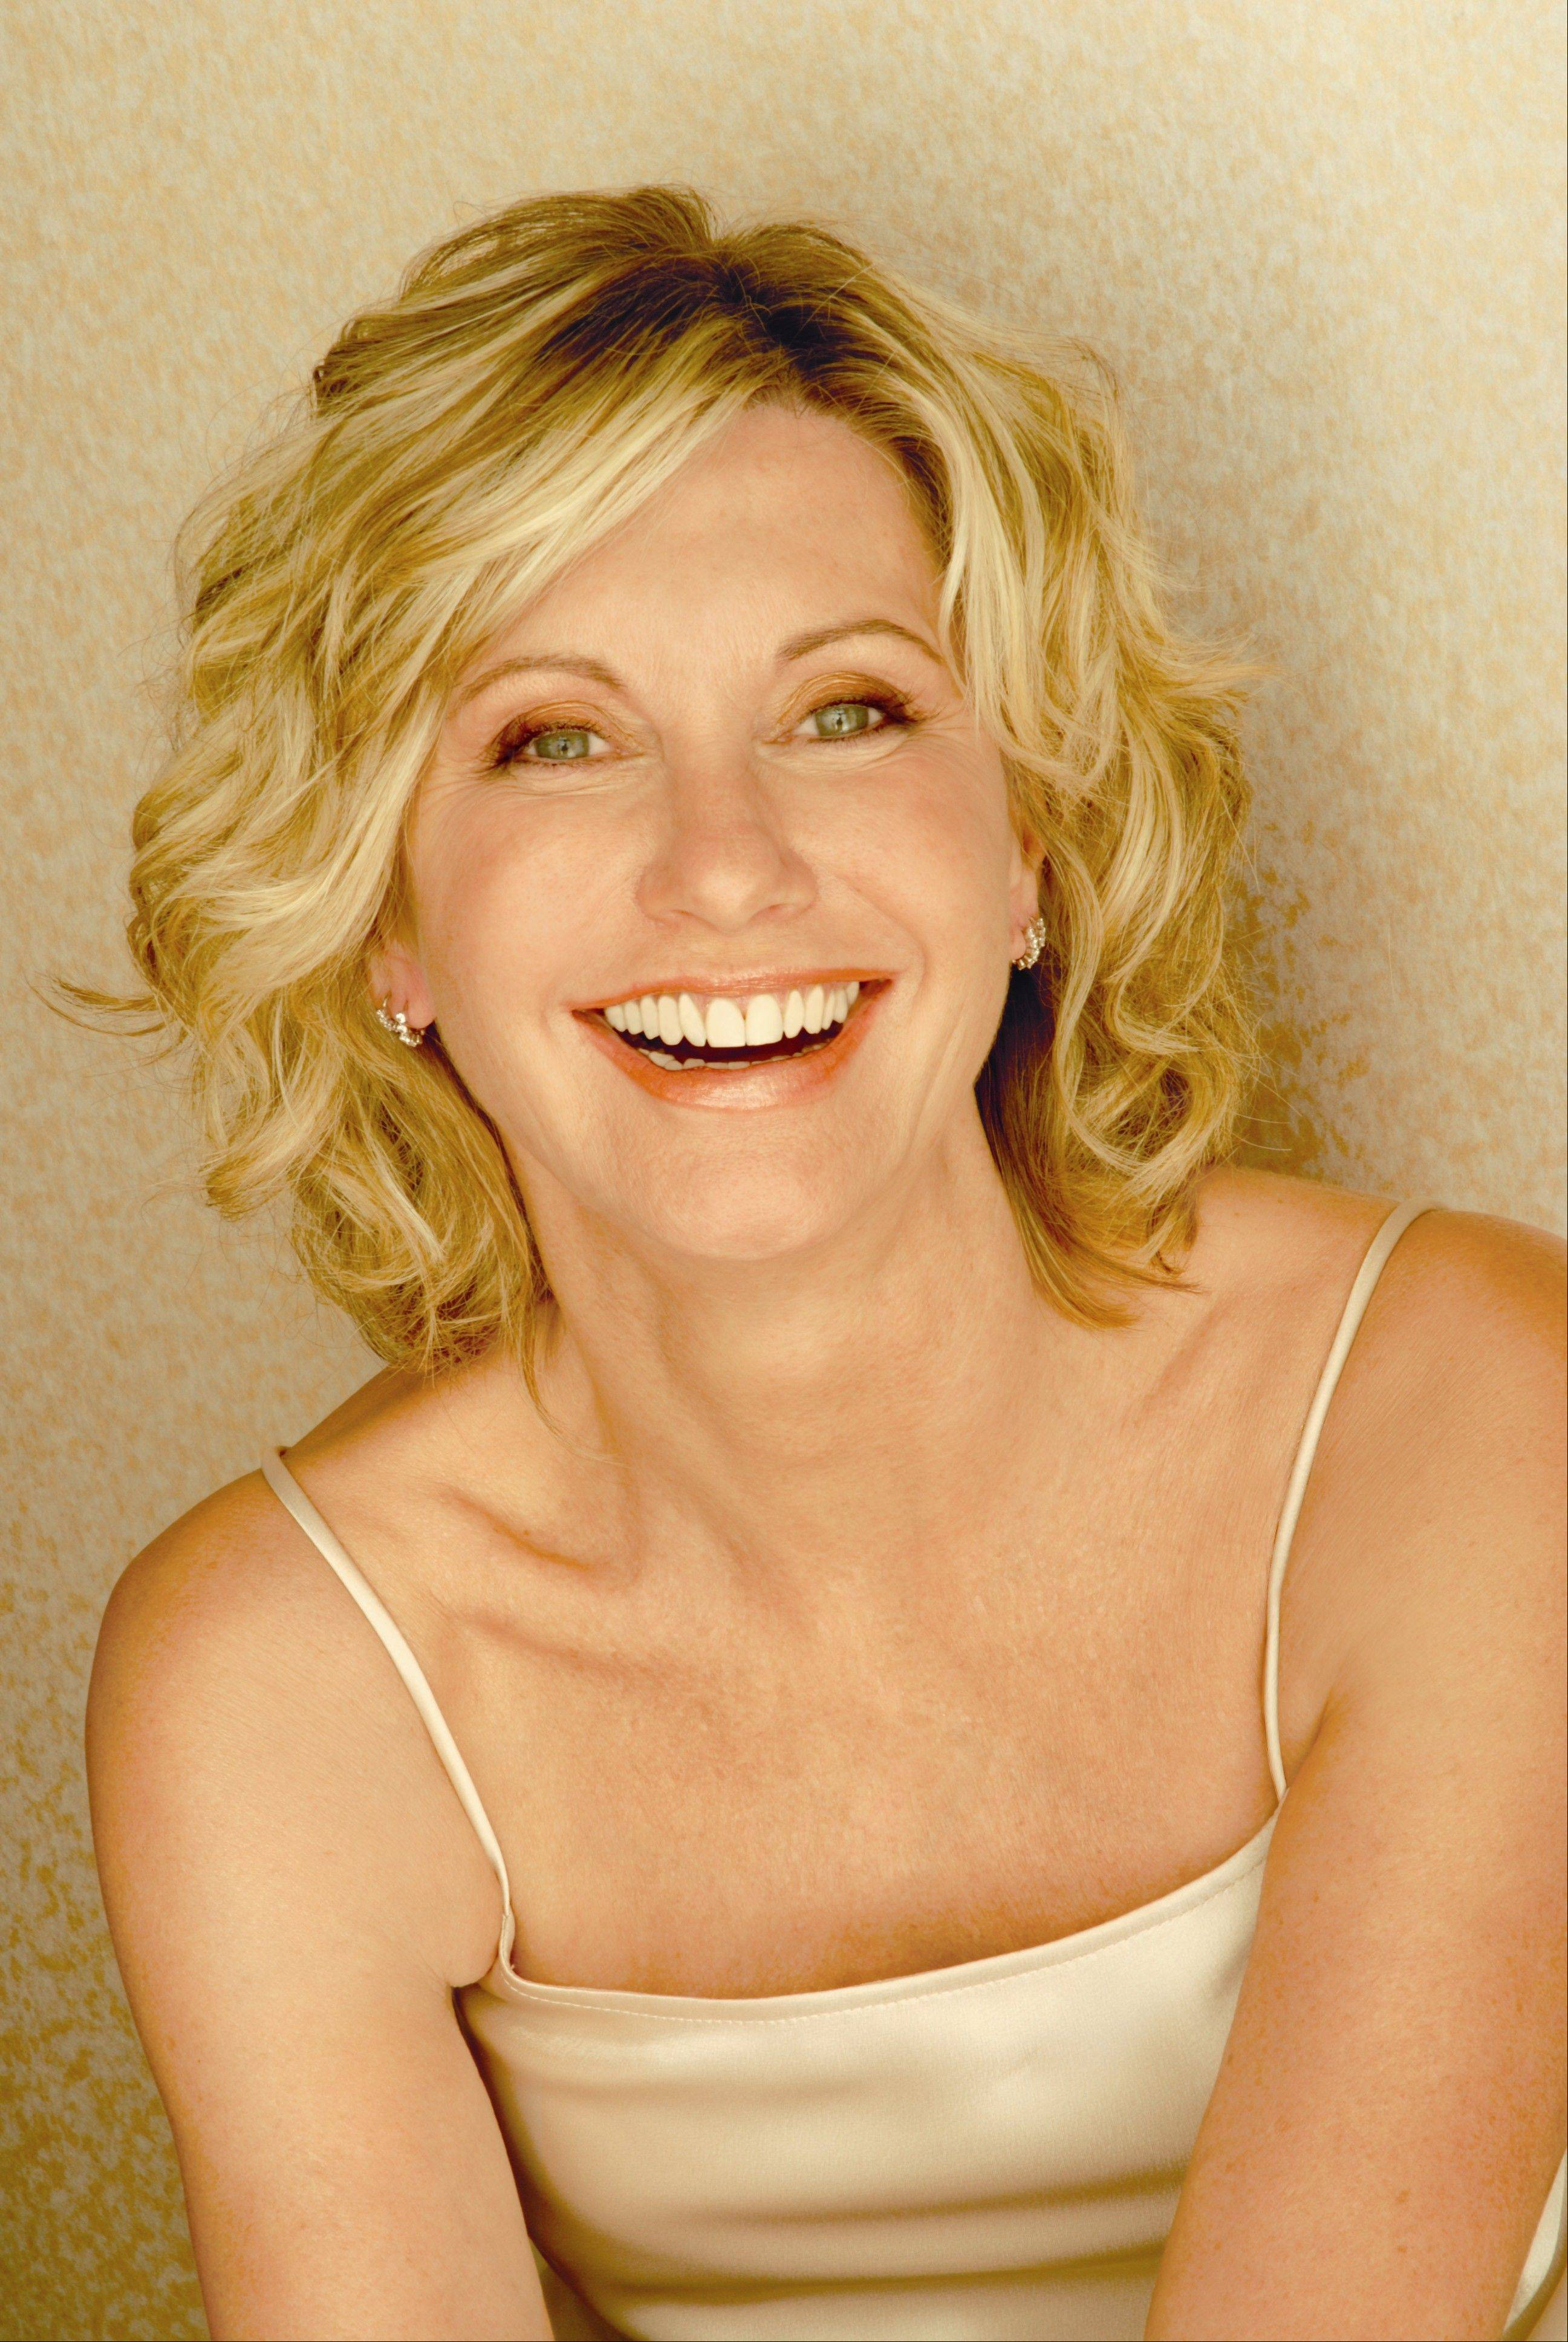 Australian pop star Olivia Newton-John is set to perform at the Paramount Theatre in Aurora at 8 p.m. Saturday, Nov. 10.